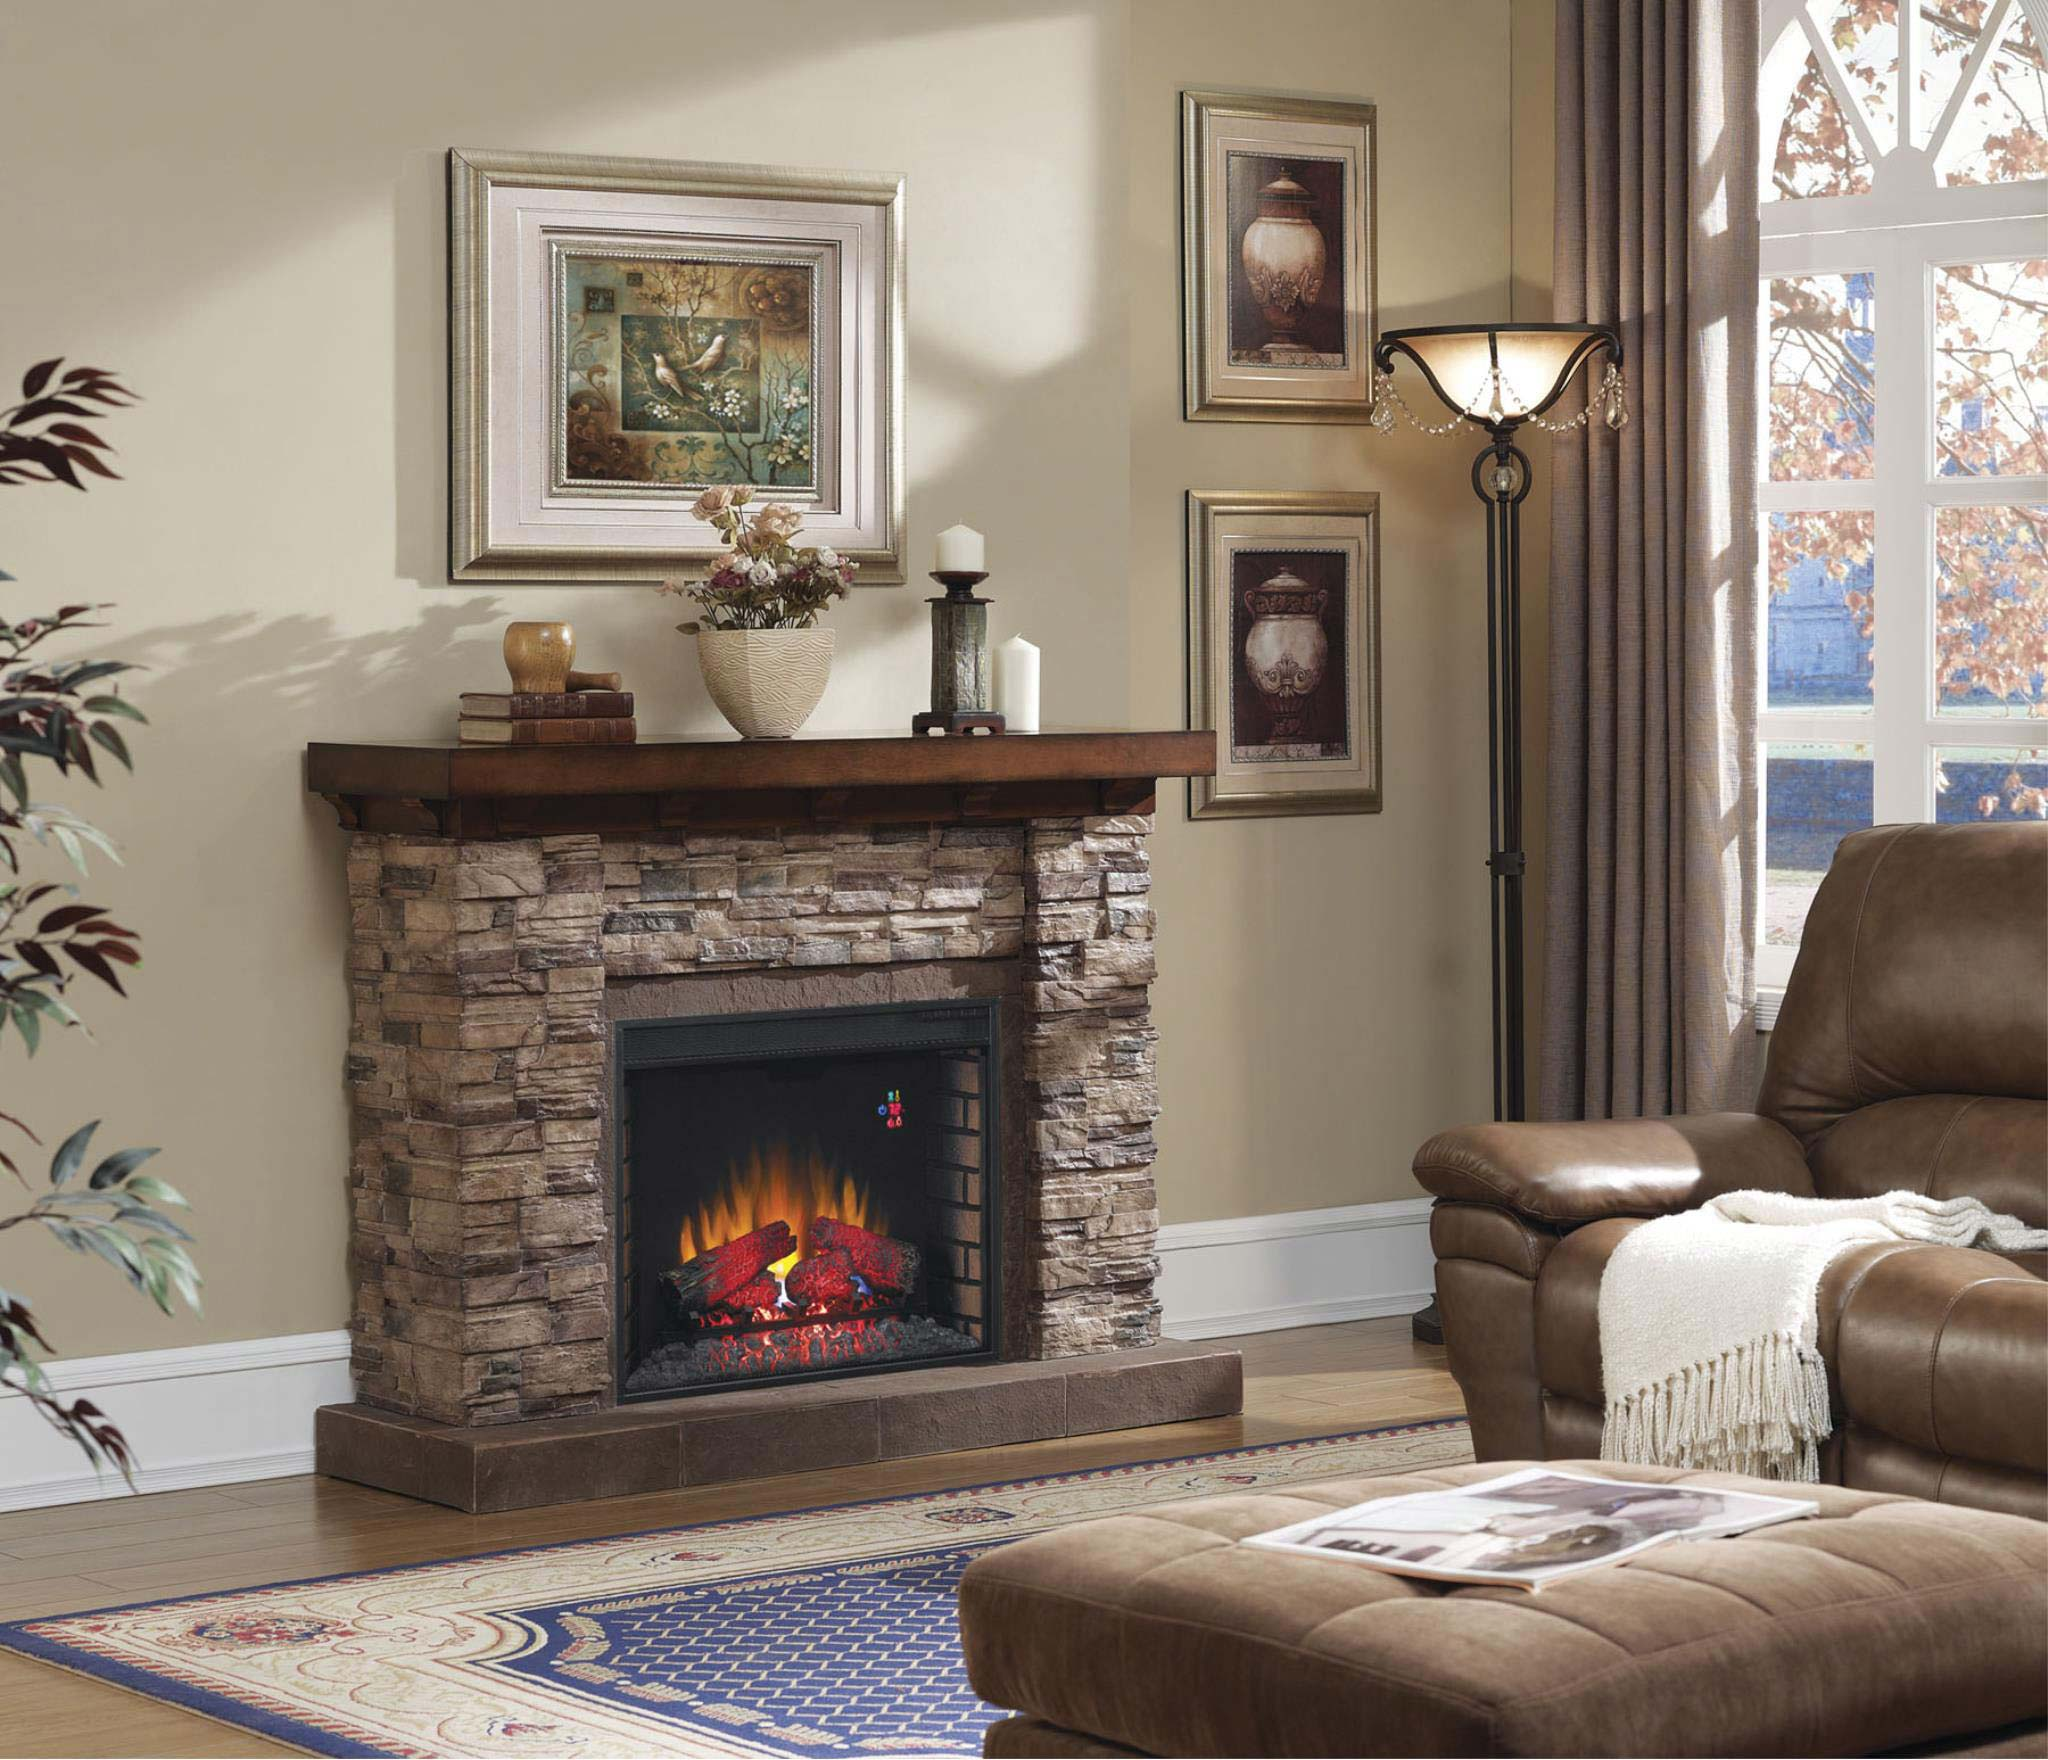 Spectrafire Electric Fireplace Video Fireplaces